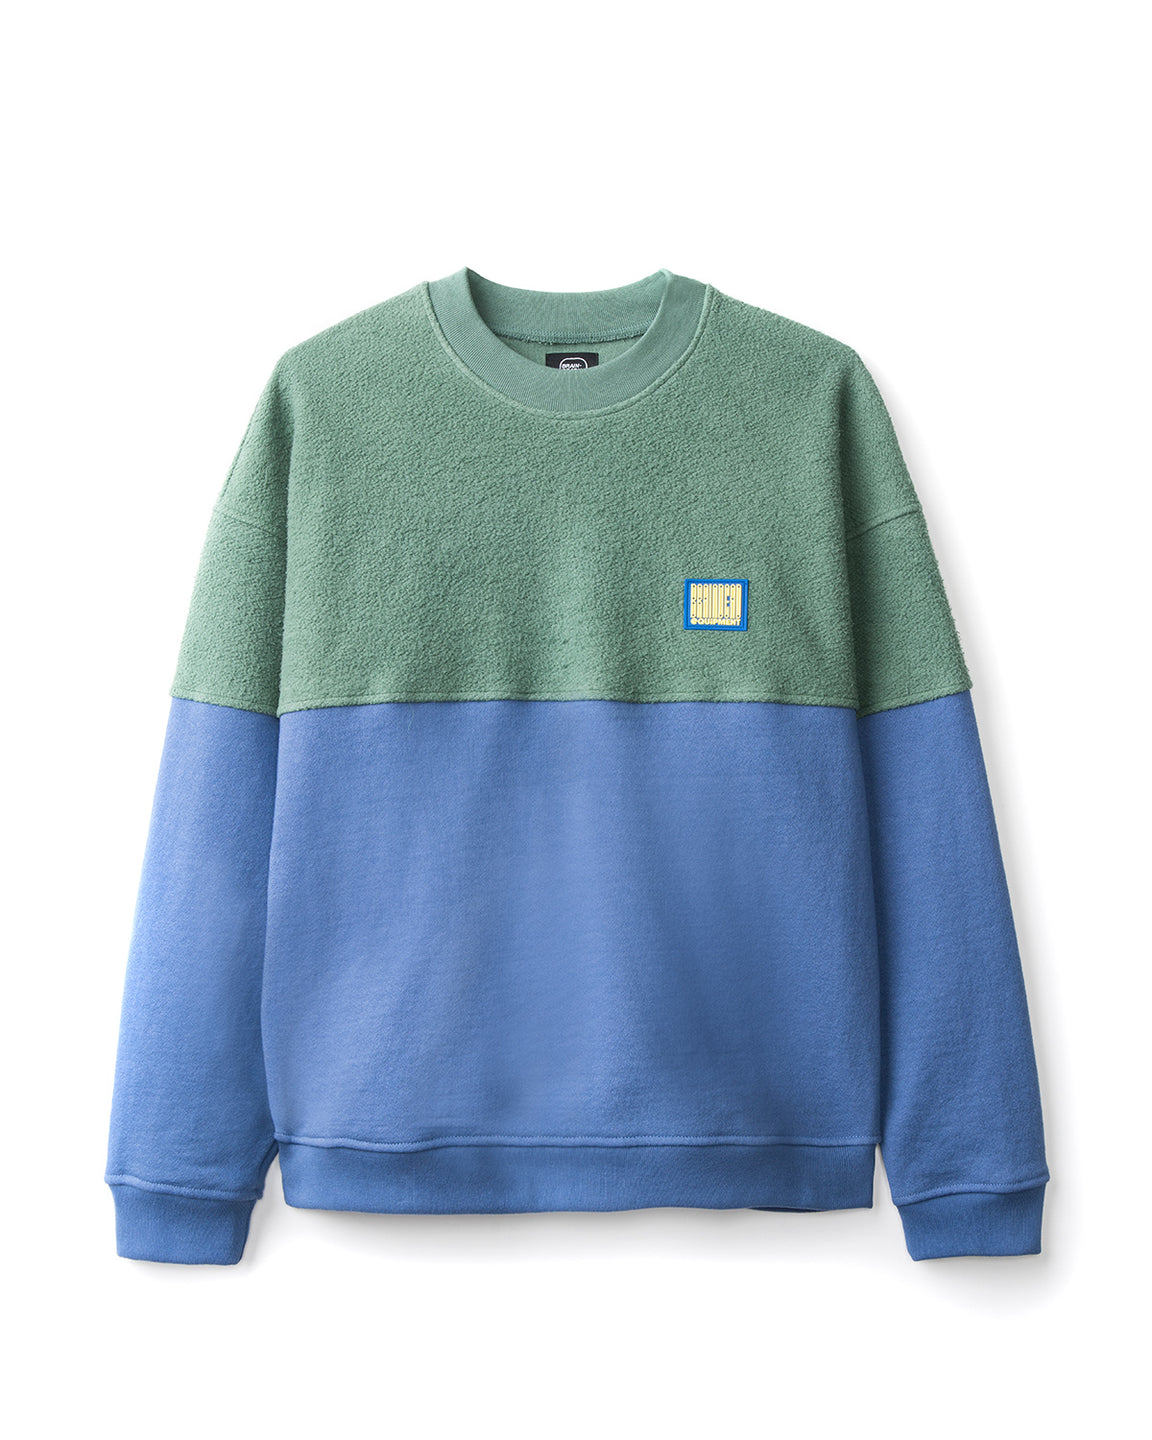 Split Crew Neck - Green/Blueberry